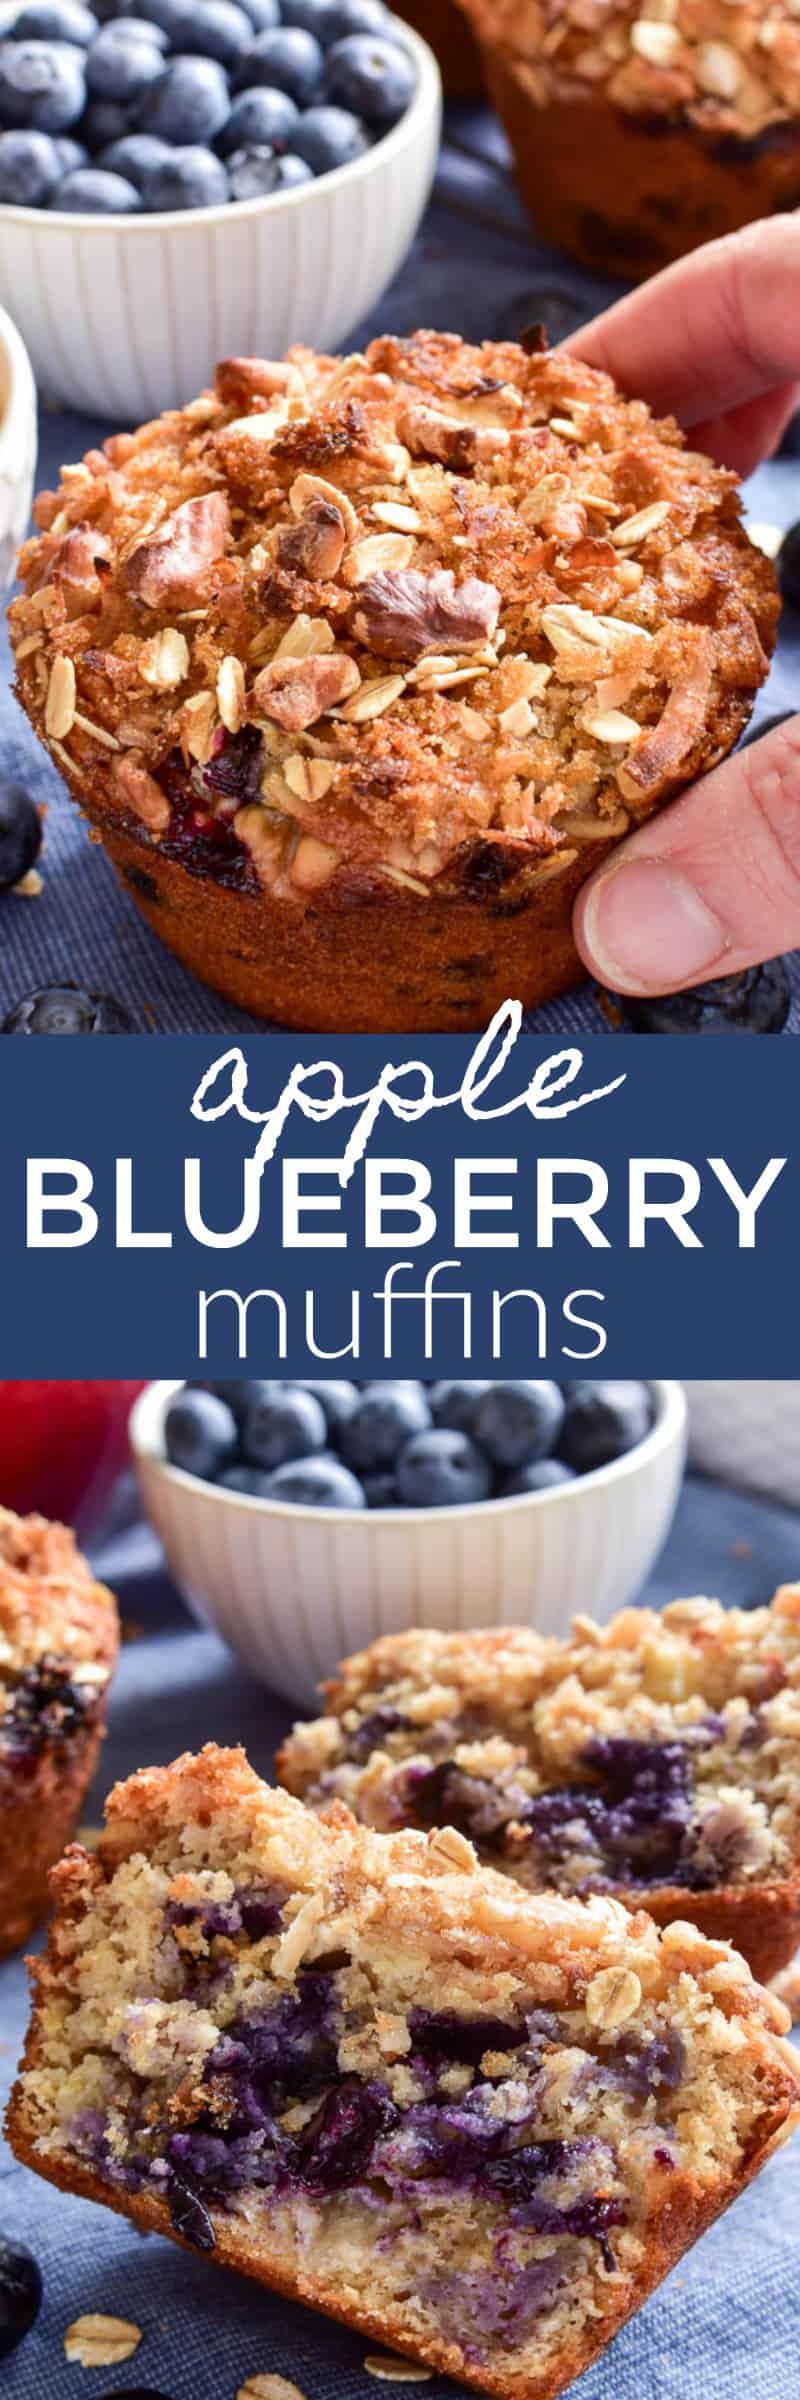 Apple Blueberry Muffins are a delicious grab and go option that's perfect for breakfast or an afternoon snack. These muffins combine two favorites in one yummy breakfast treat that's loaded with superfoods and topped with a sweet, crunchy topping. If you love blueberry muffins, you'll love this healthier option....perfect for the whole family!